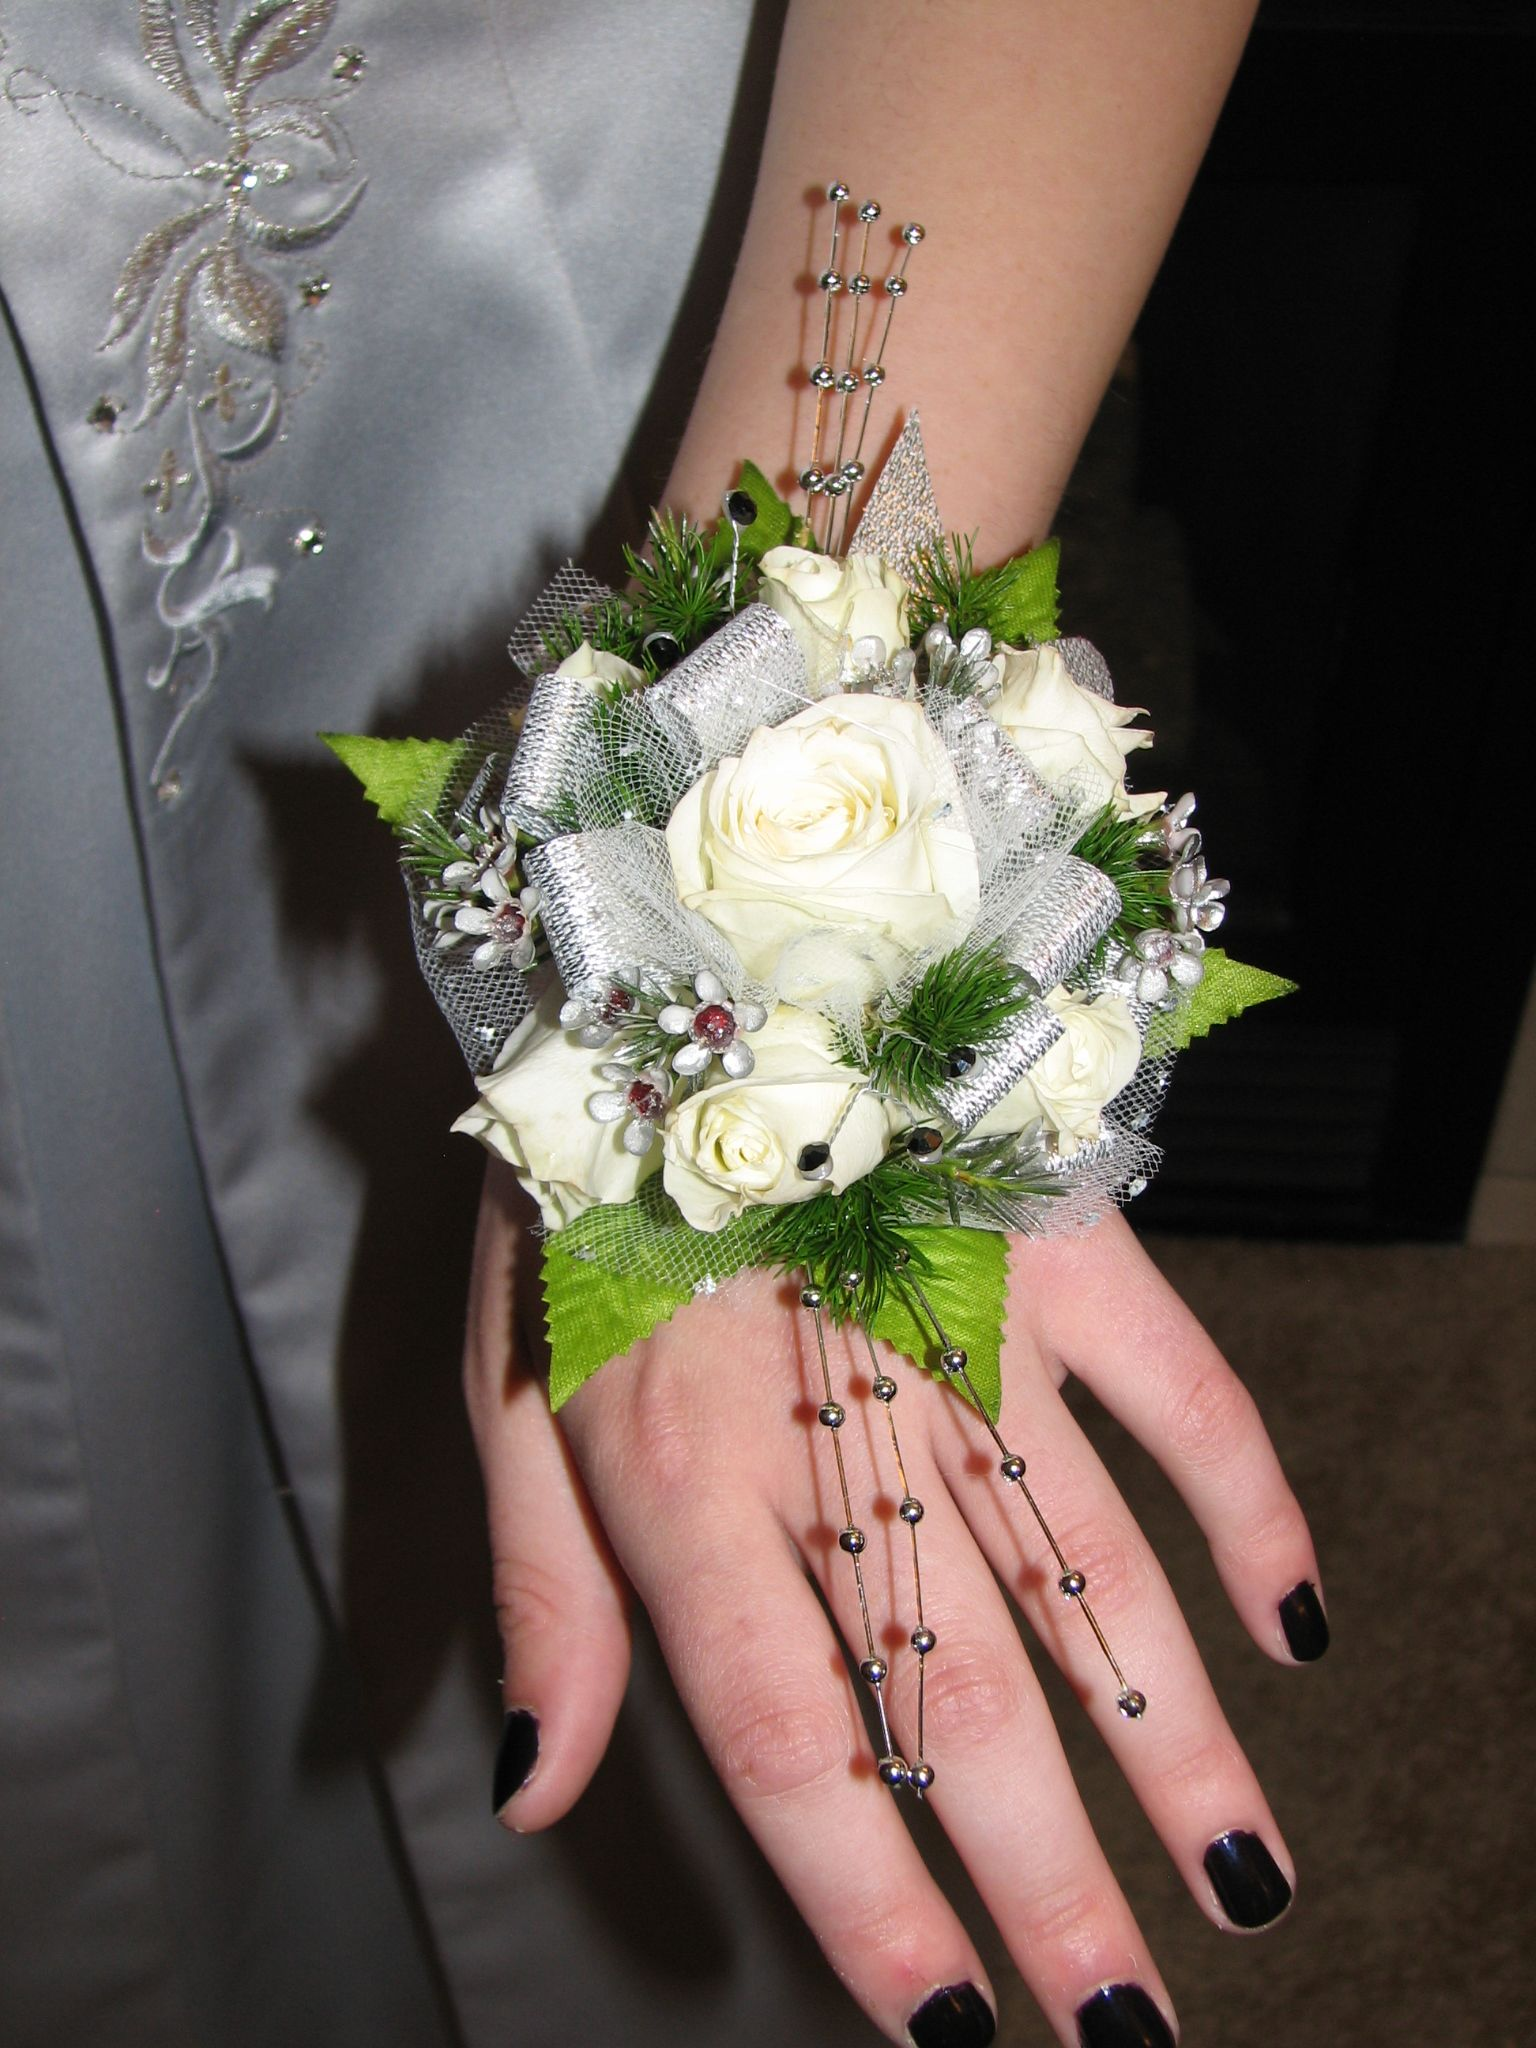 prom corsage ideas | prom corsage by the-reborn-shadow | prom flower